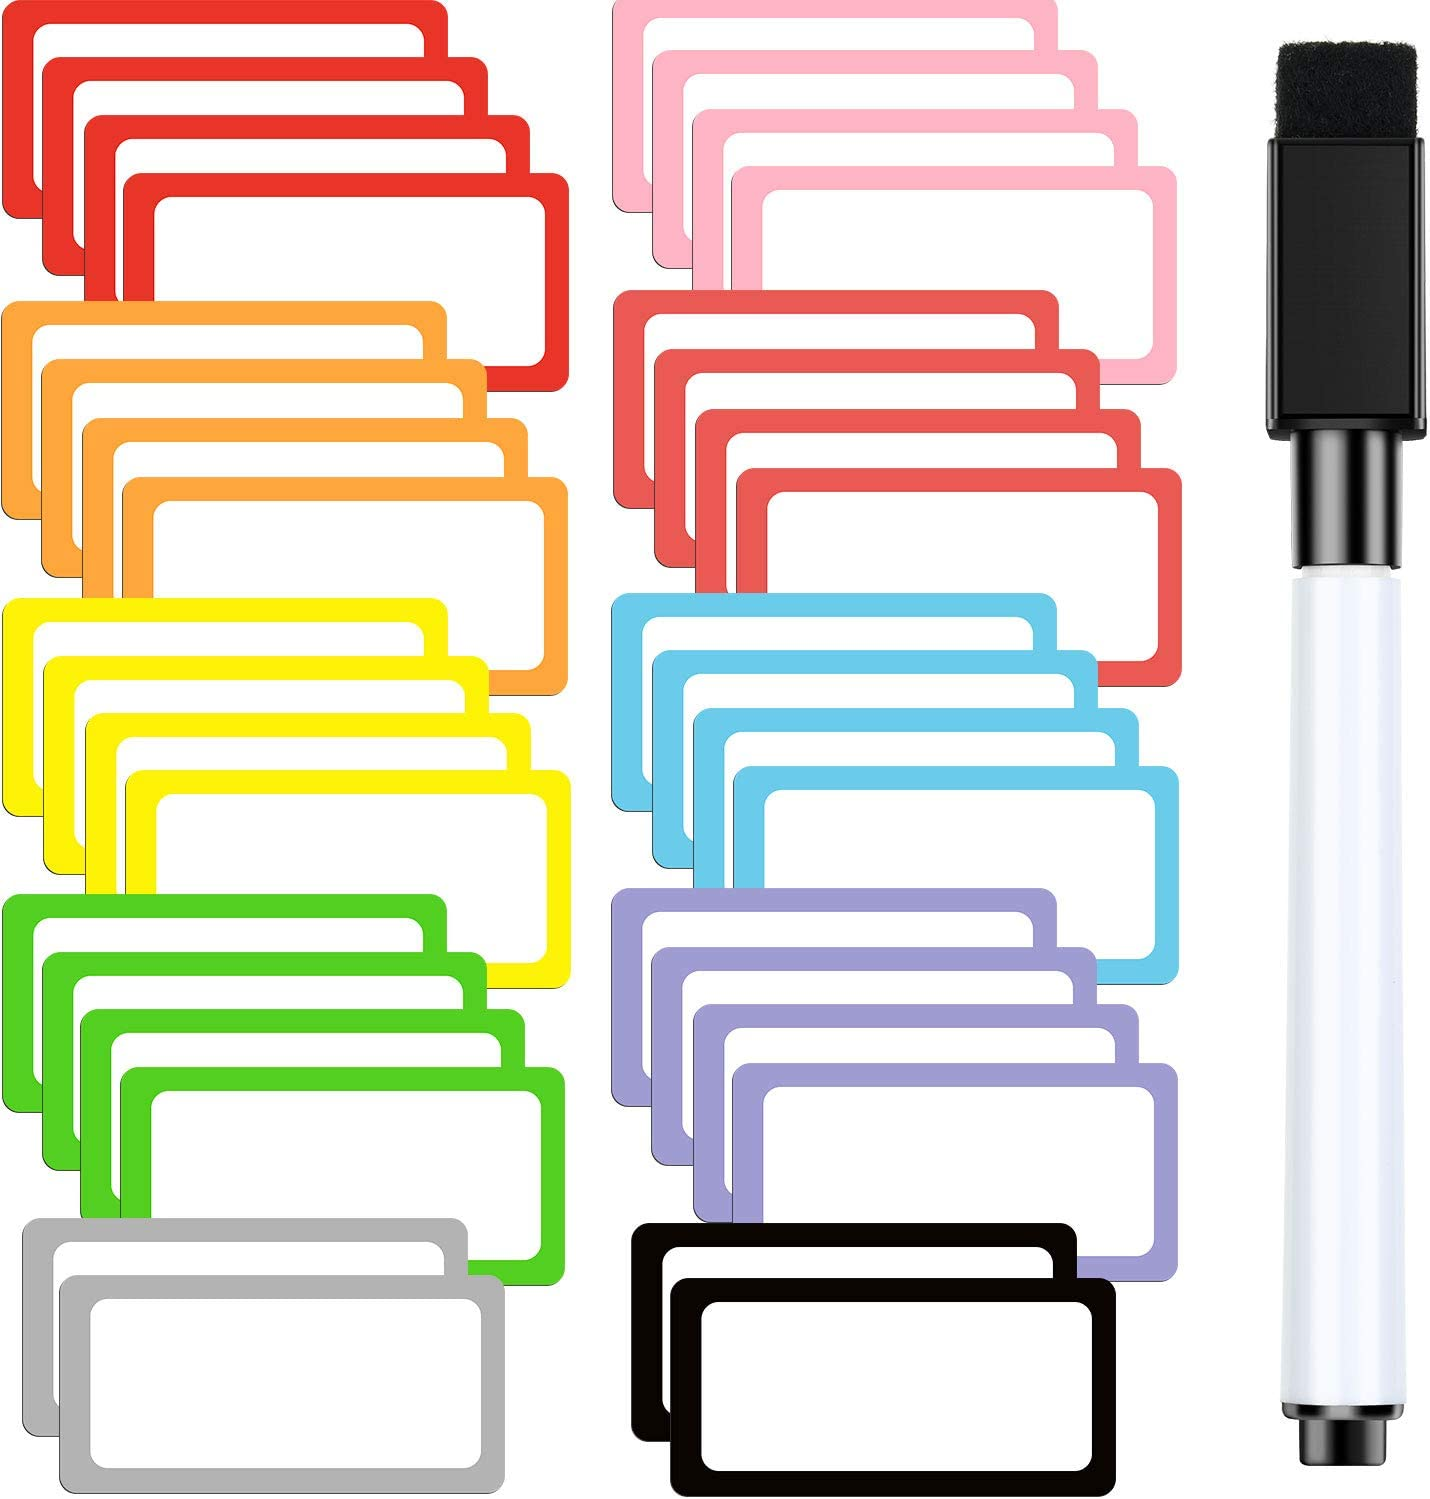 36 Pieces Magnetic Dry Erase Labels Name Plates Labels 1 x 2 Inch Sticky White Board Labels Dry Erase Magnets for Whiteboard, Refrigerator, Metal Shelves Crafts